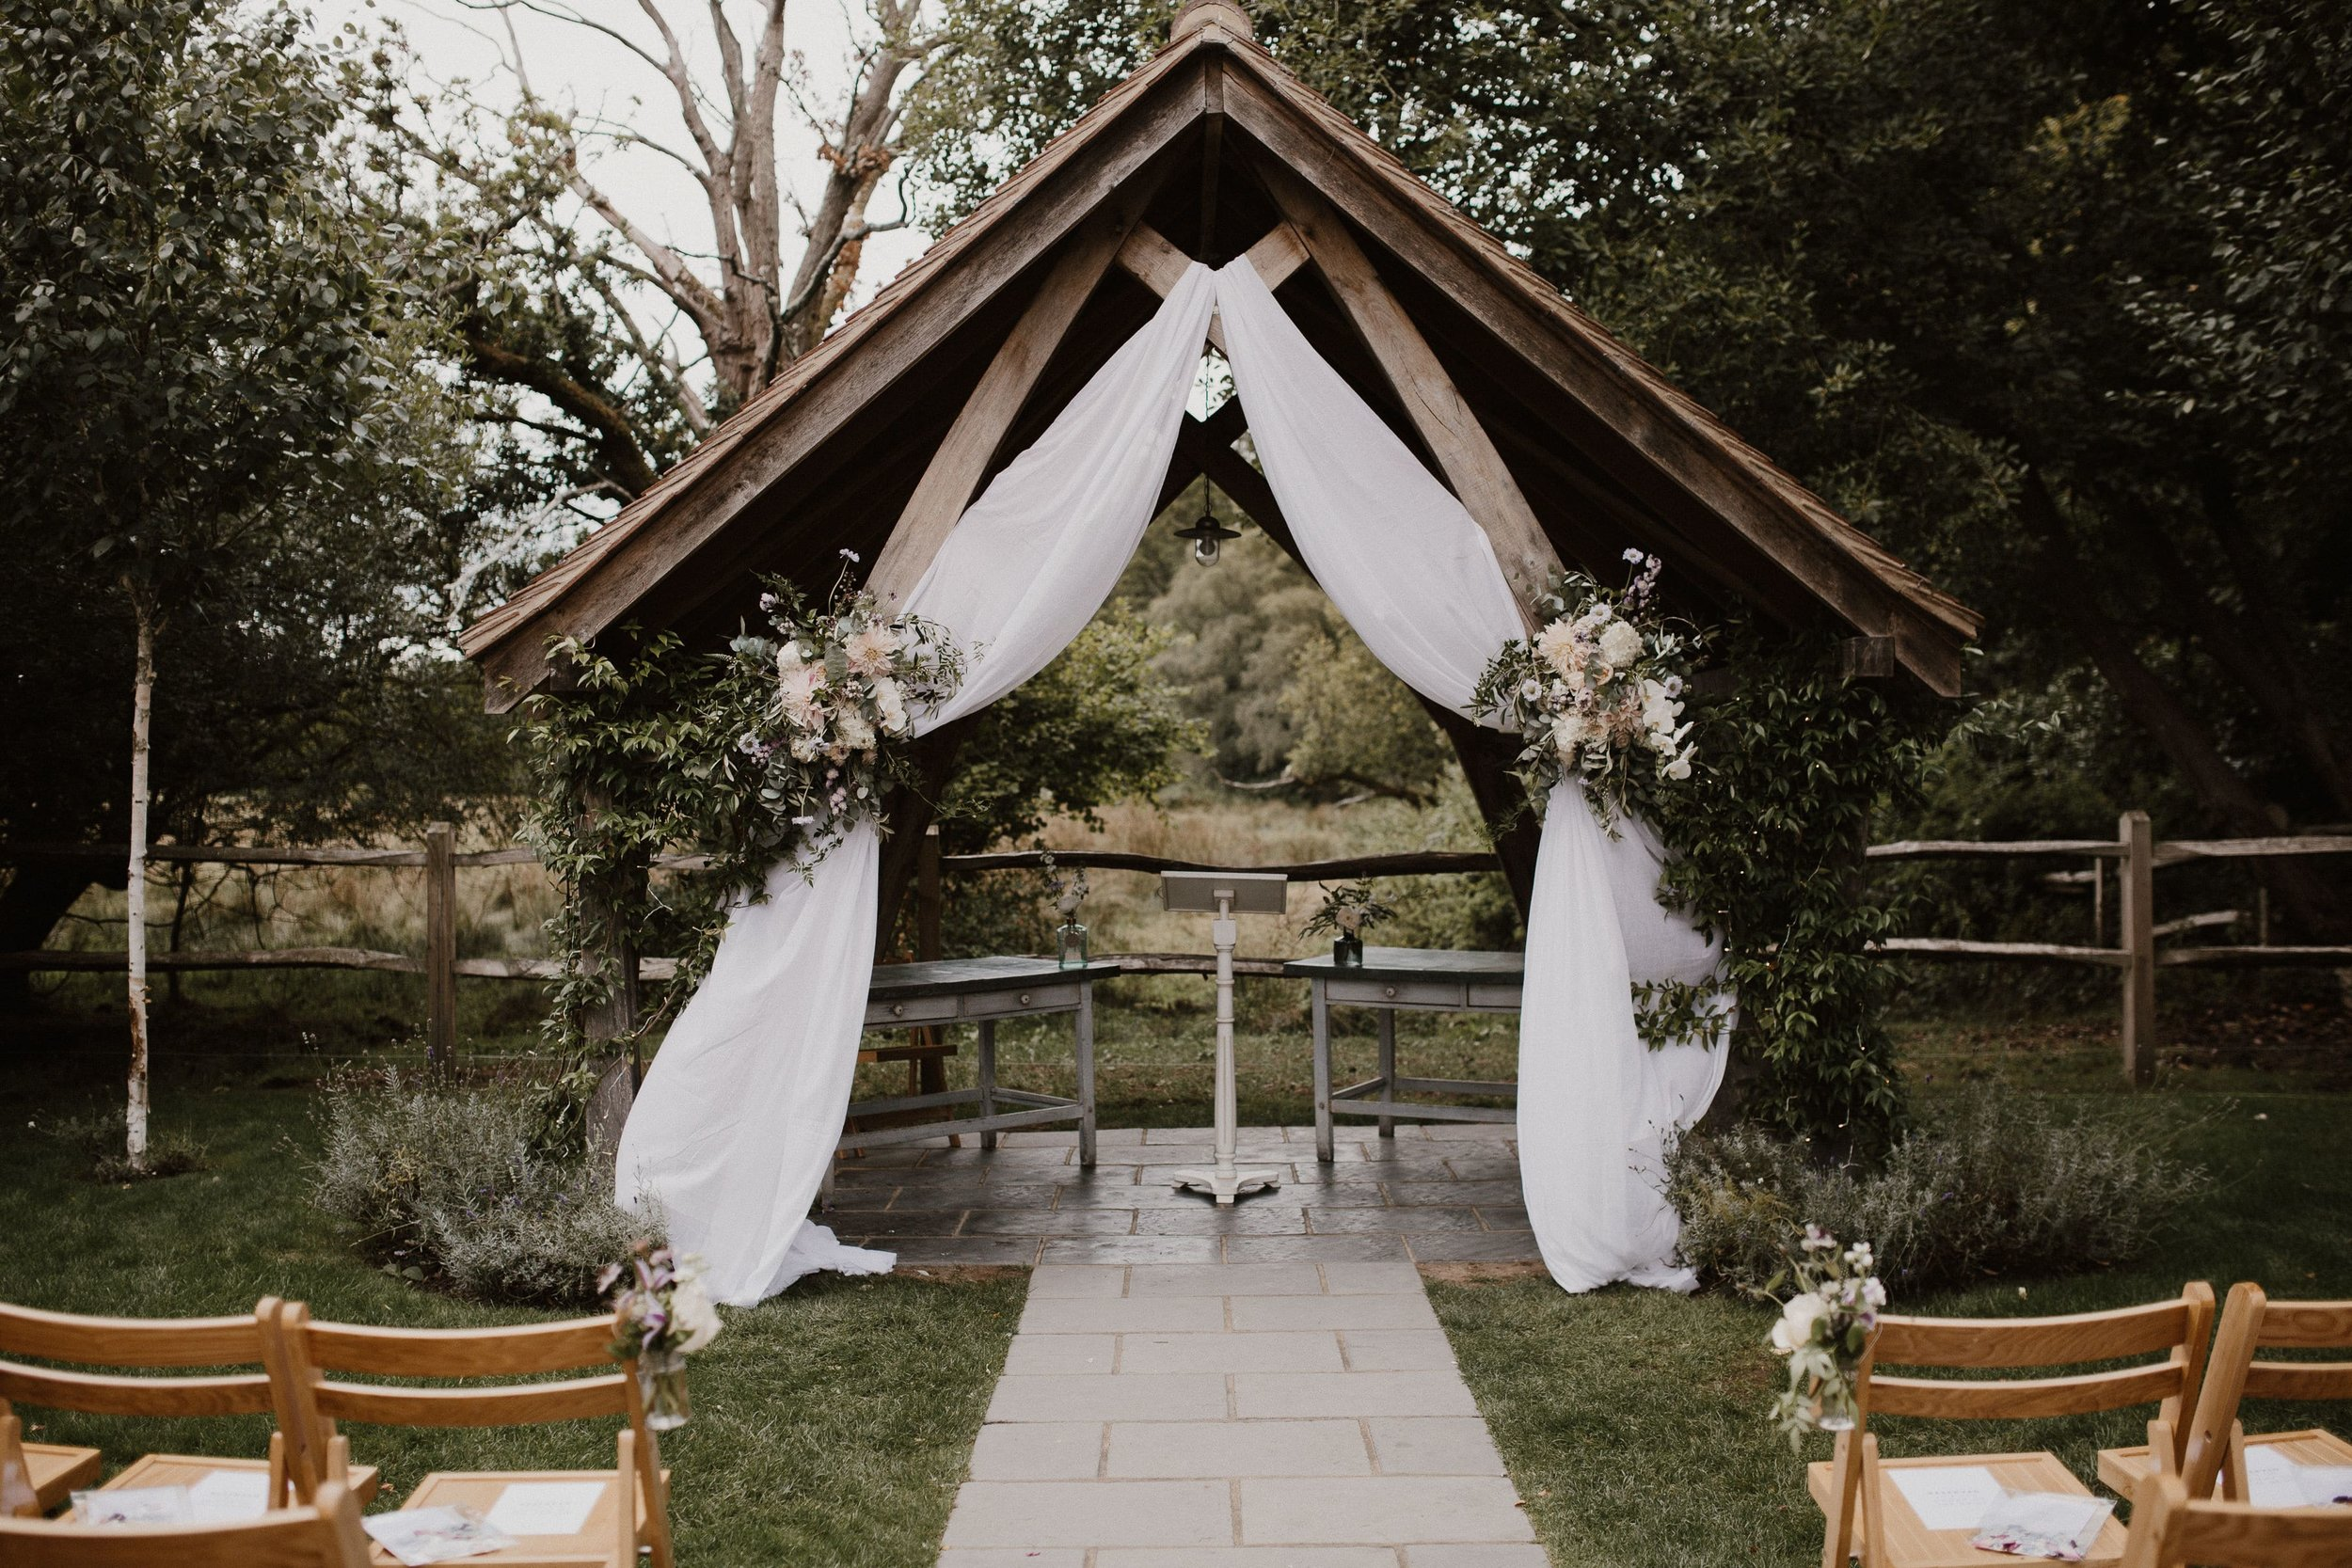 Nat and Tom - 01 - Venue and Details - Sara Lincoln Photography-10-min.jpg